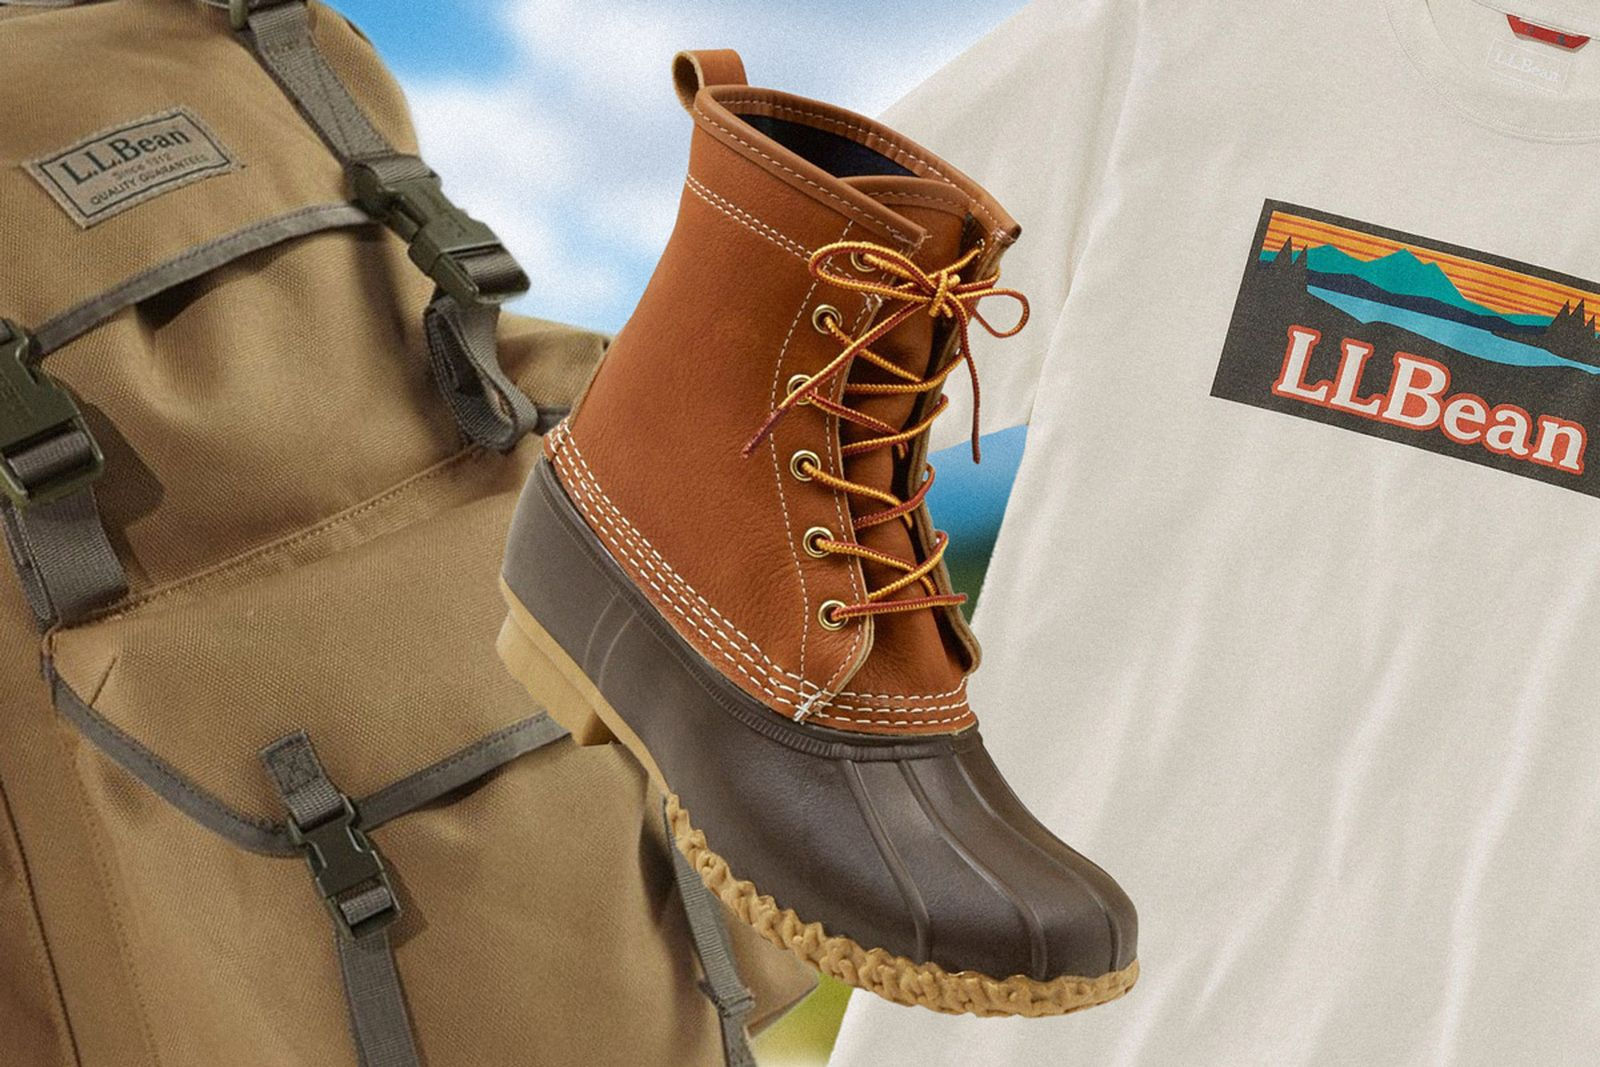 l-l-bean-gave-outdoors-streetwear-japan-brand-forgotten-main